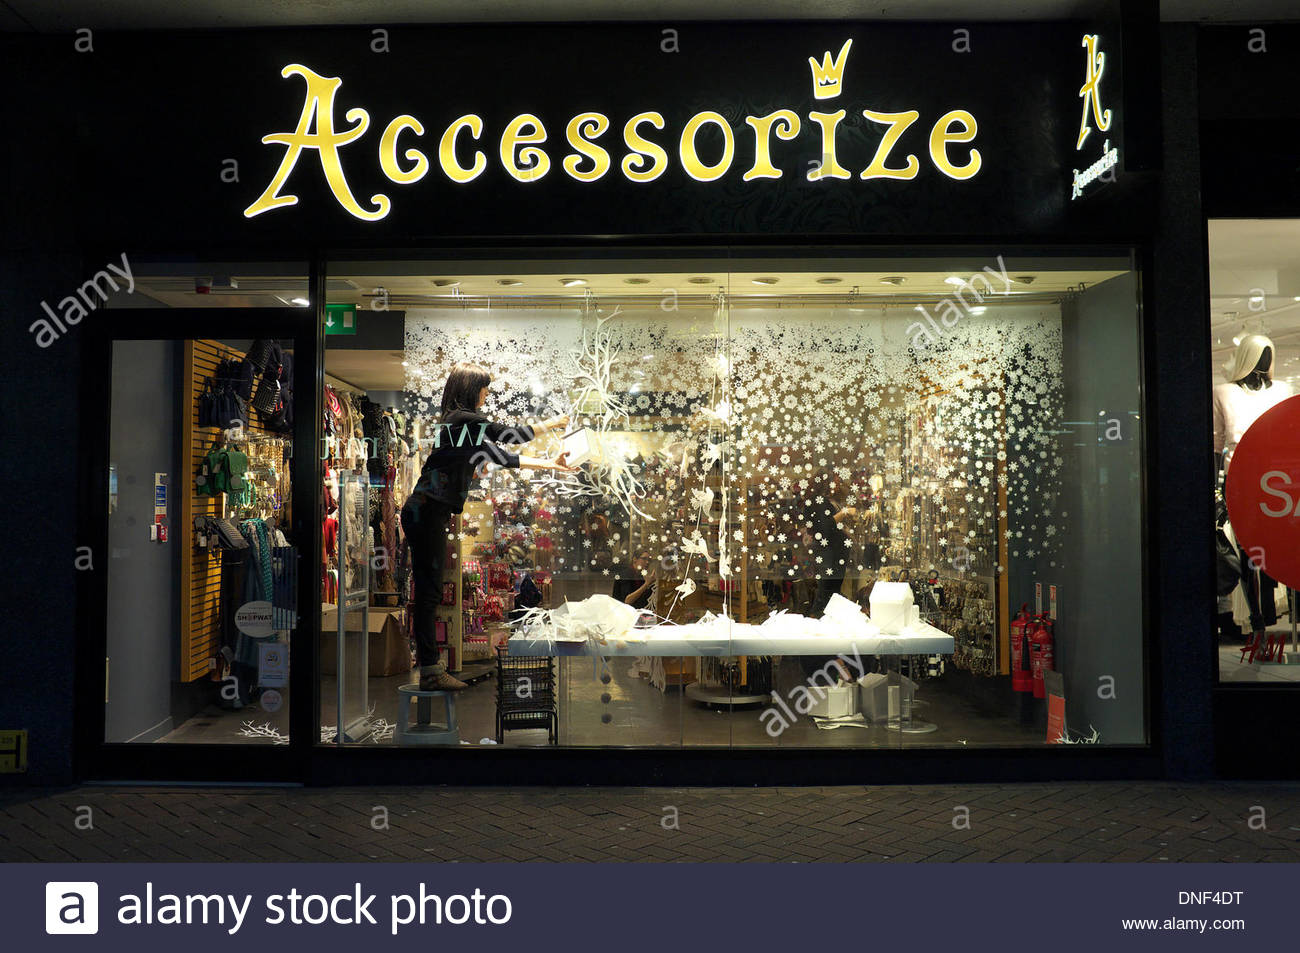 A shop worker removes Christmas decorations in the display window of retailer Accessorize, a fashion accessory retail chain. It is Christmas Eve and the last customers have left and the store is preparing to be ready for the Boxing Day sales. Gloucester, UK, 24th December 2013. - Stock Image